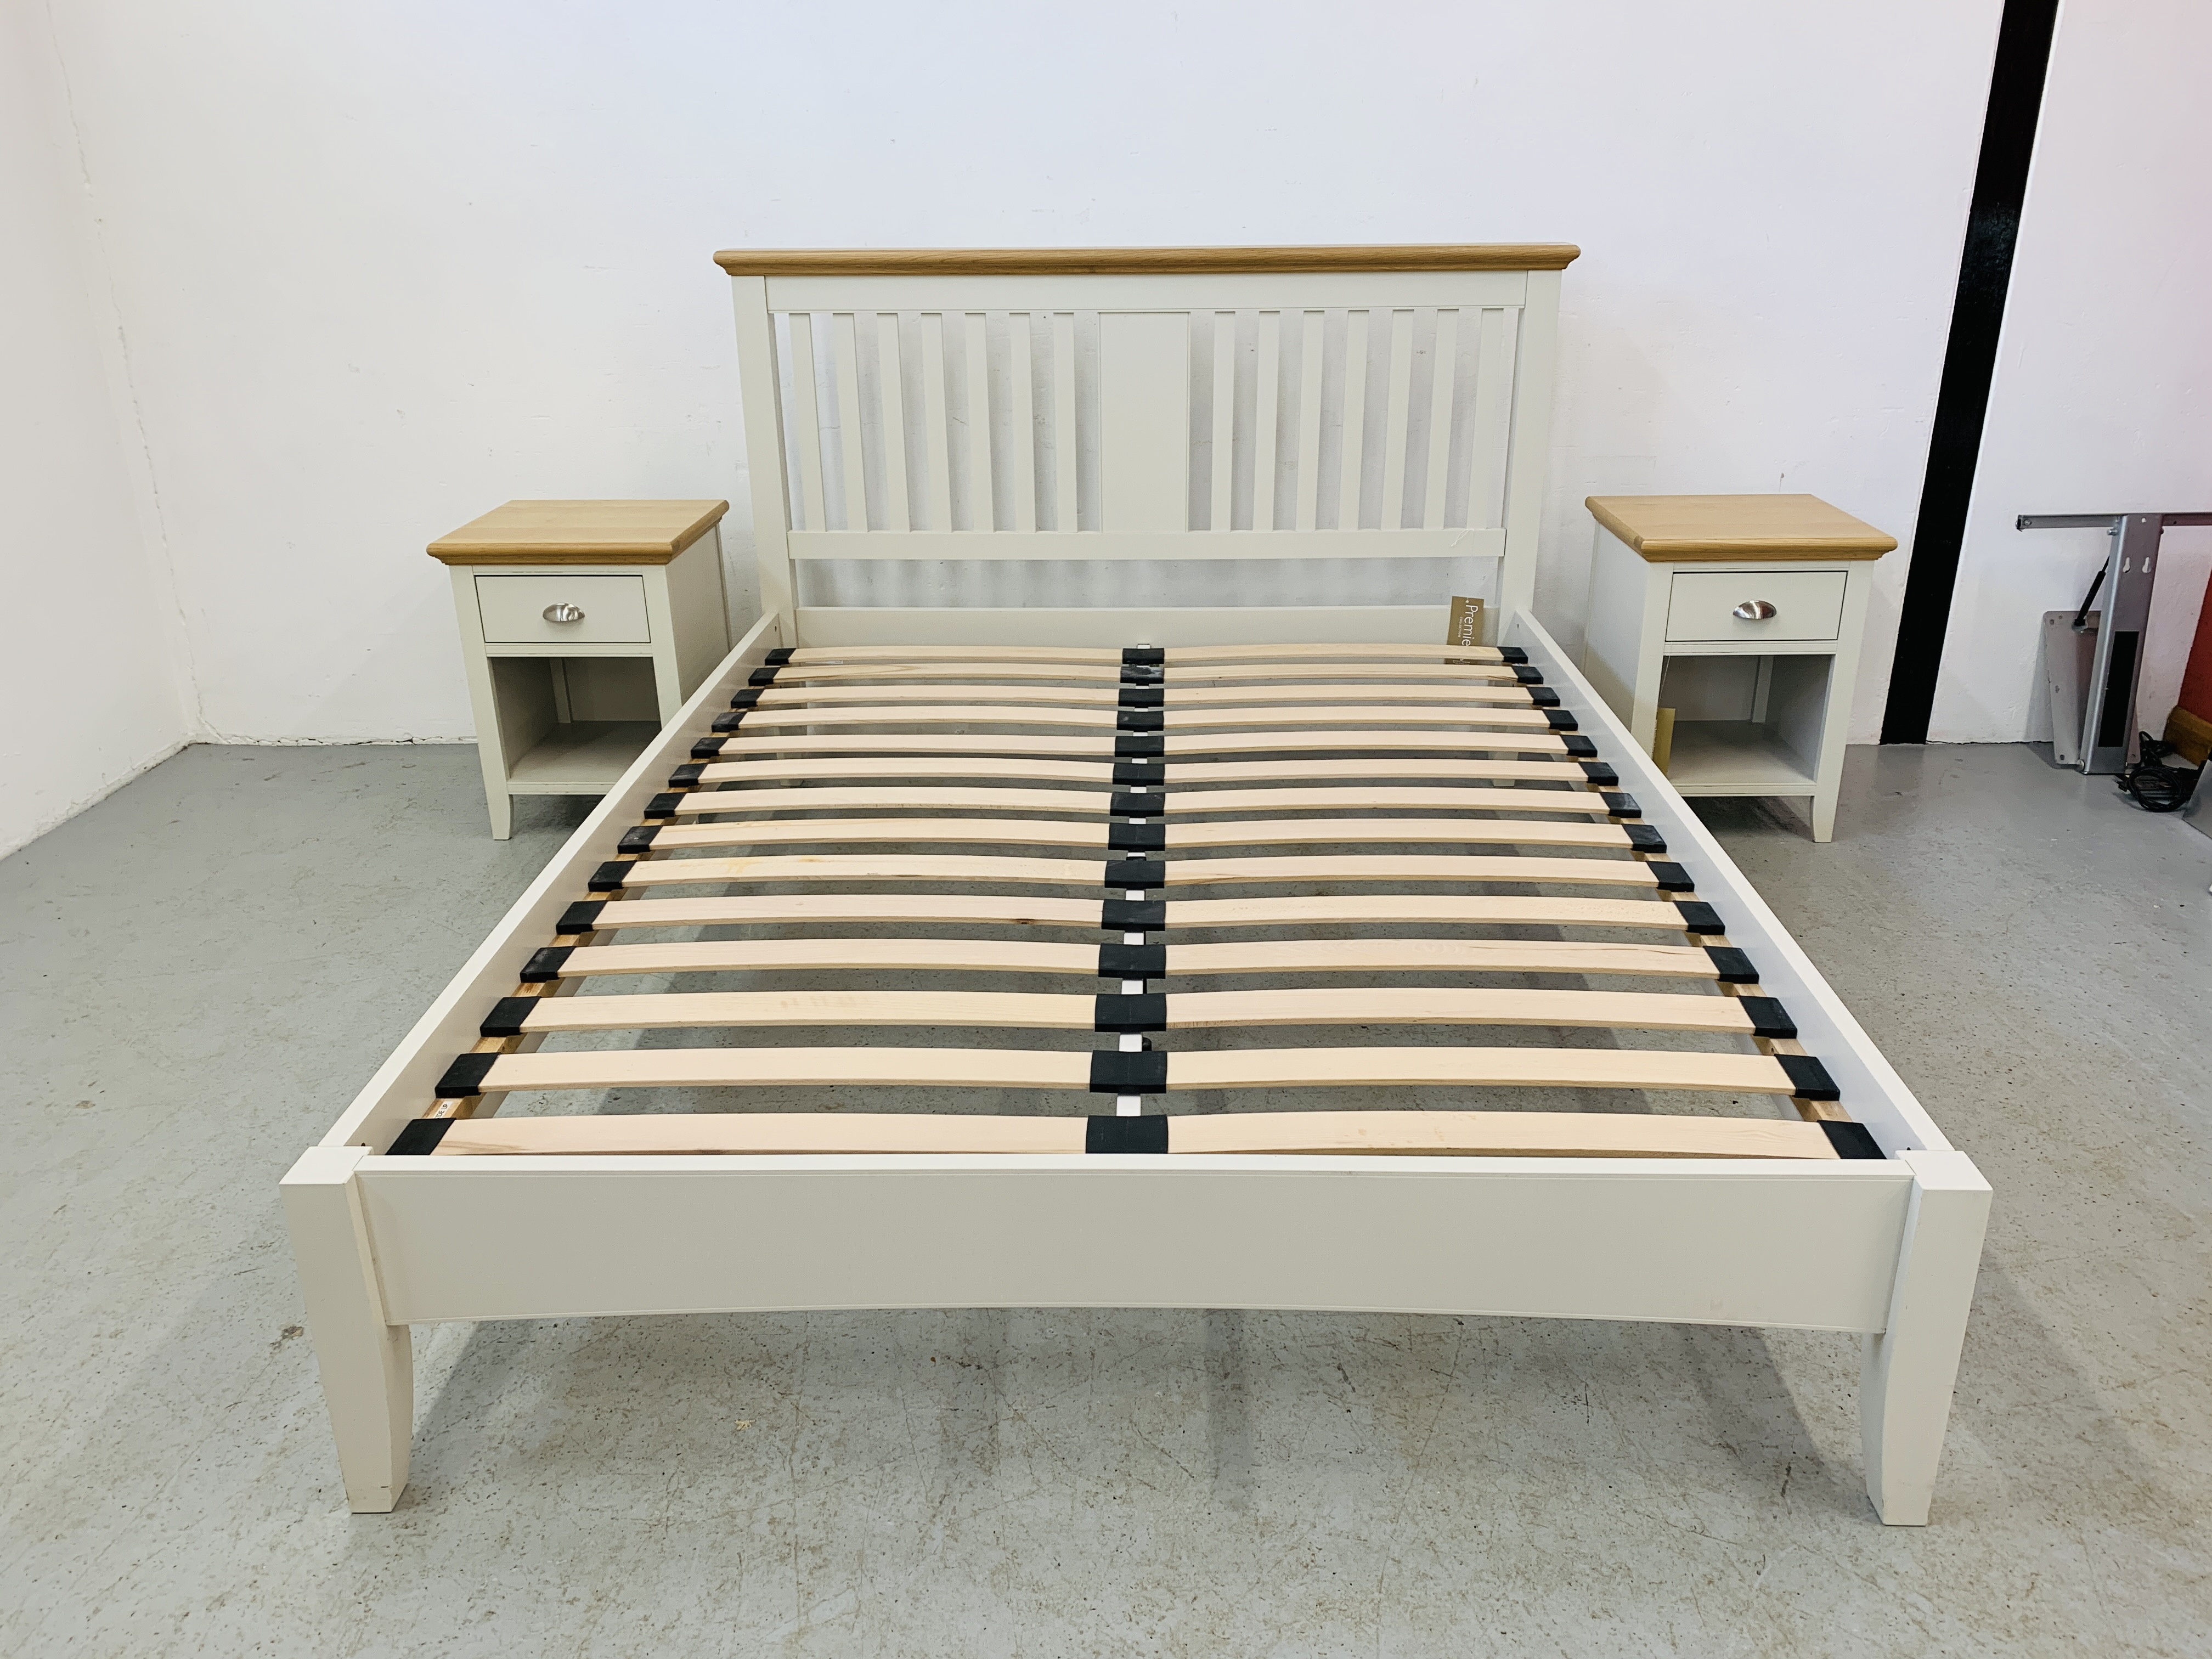 A PREMIER COLLECTION DESIGNER KING SIZE BEDSTEAD WITH MATCHING PAIR OF SINGLE DRAWER BEDSIDE STANDS - Image 2 of 15